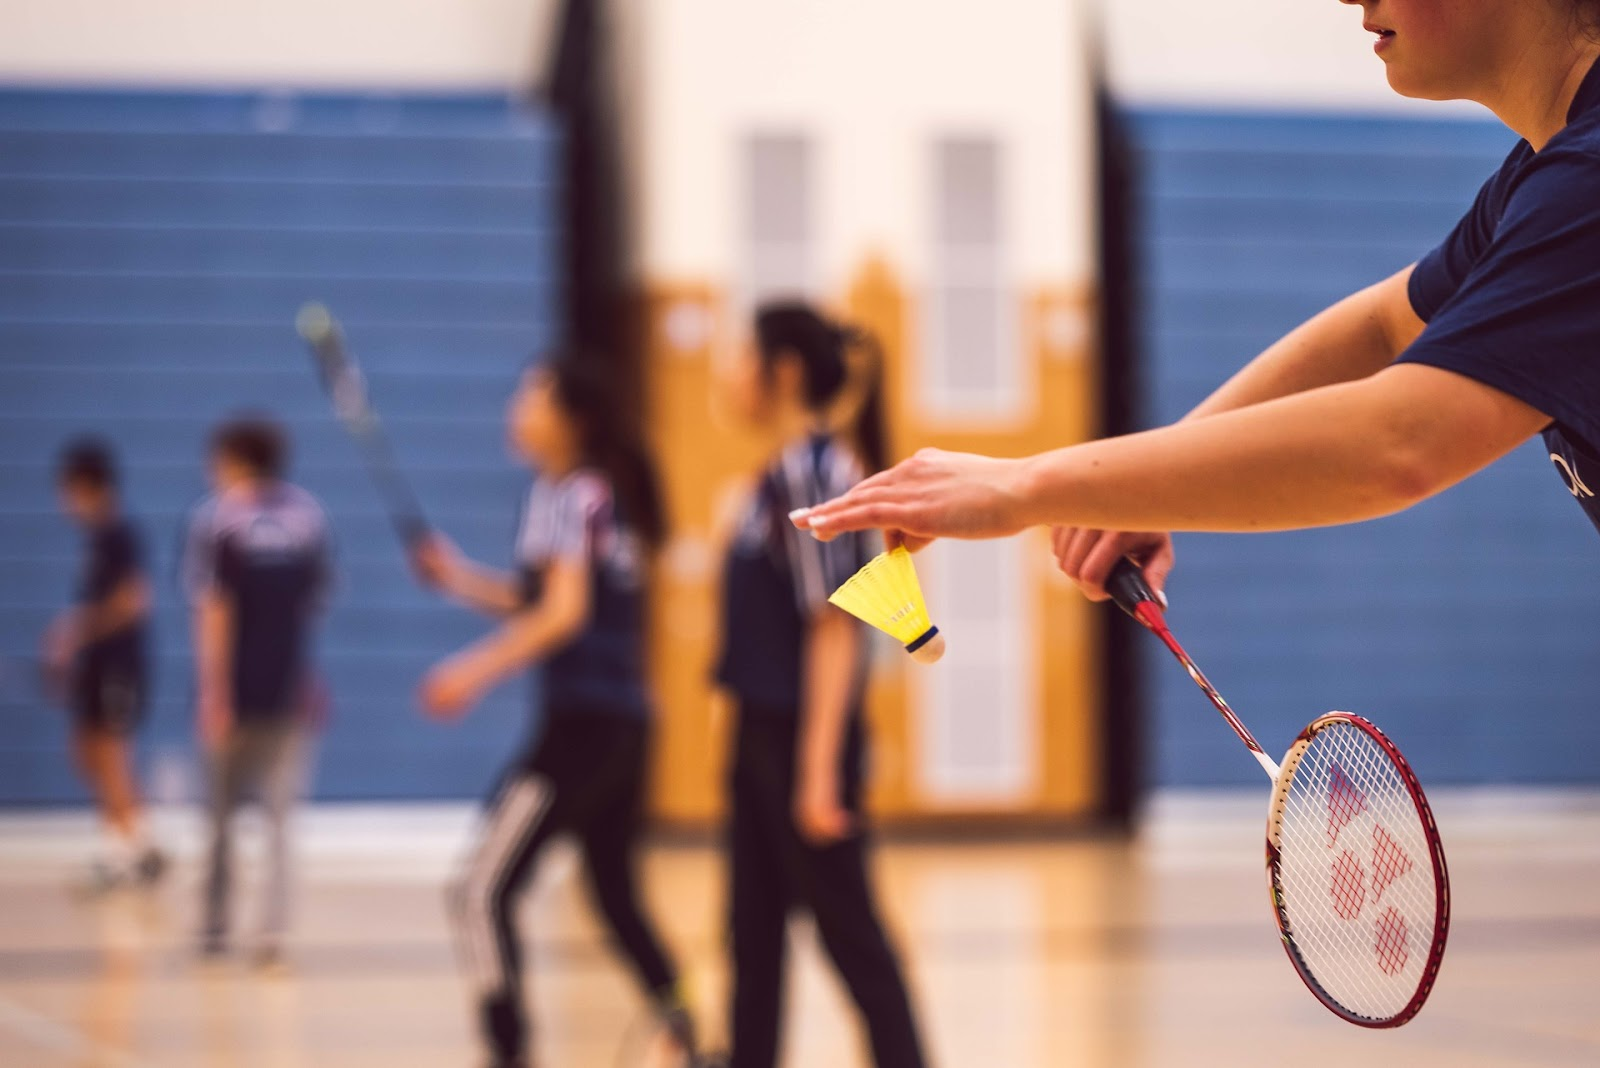 This is an image of a man holding a shuttlecock, preparing to serve with a badminton racket.